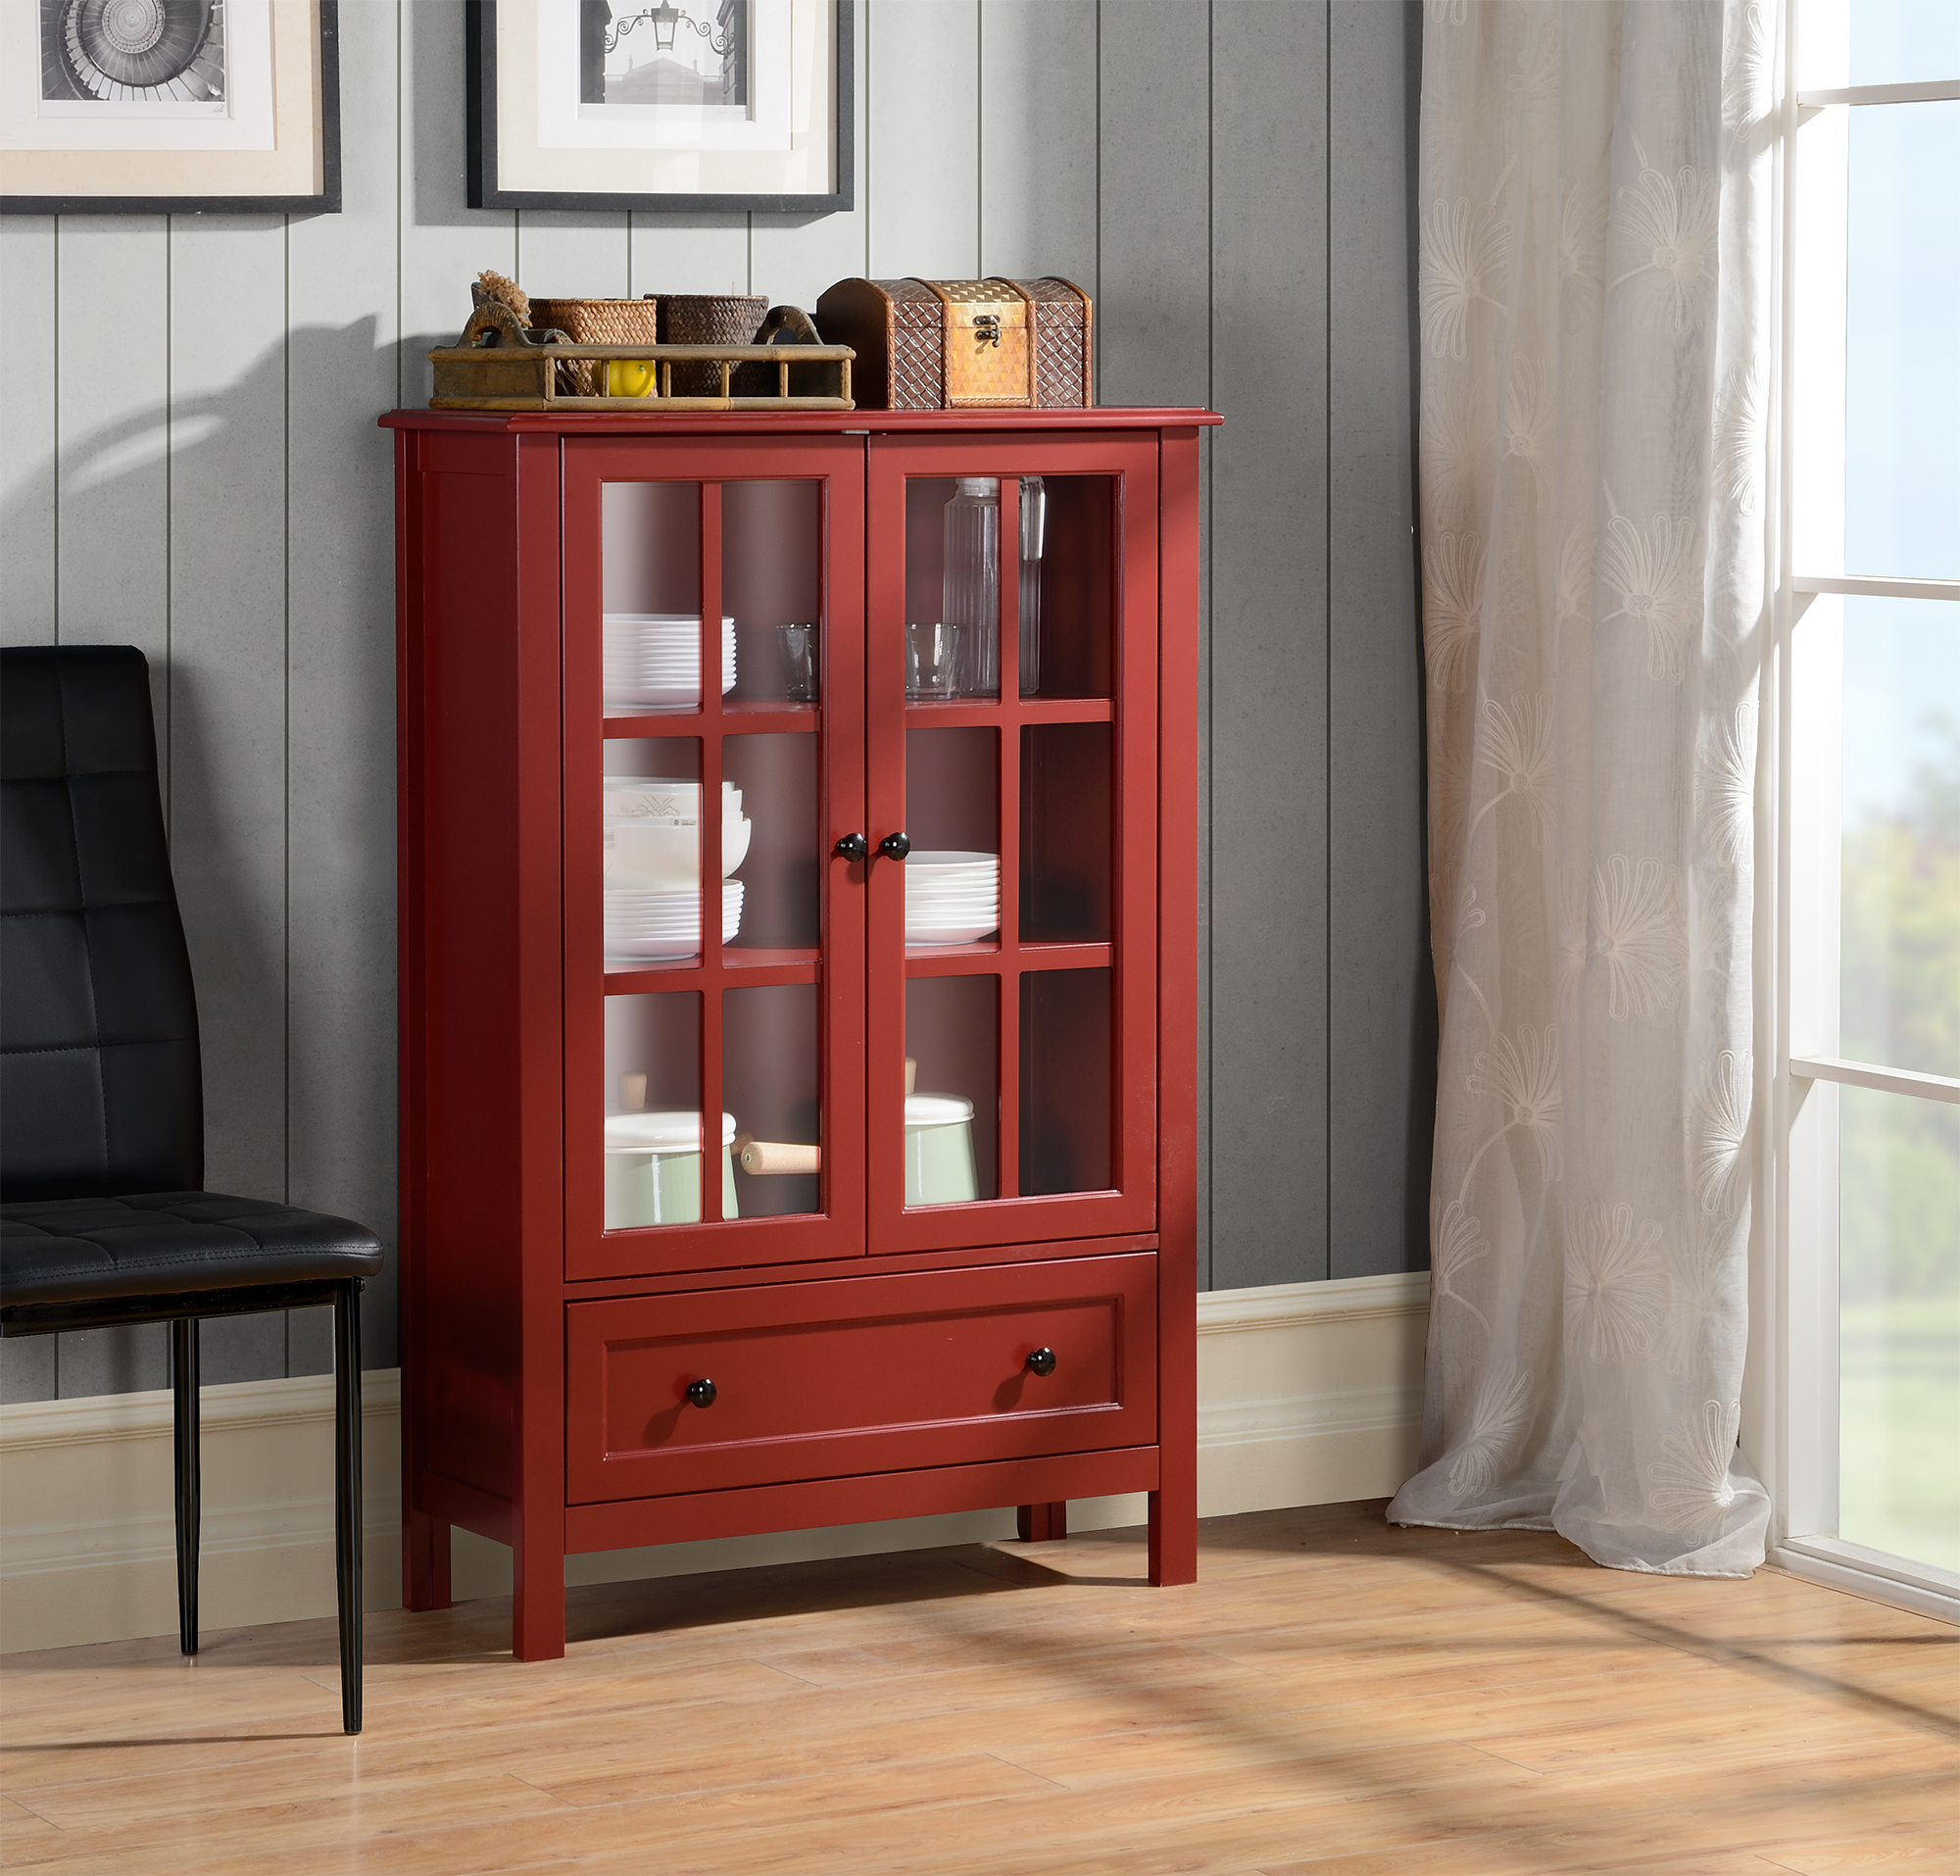 Homestar 2-Door/1-Drawer Glass Cabinet